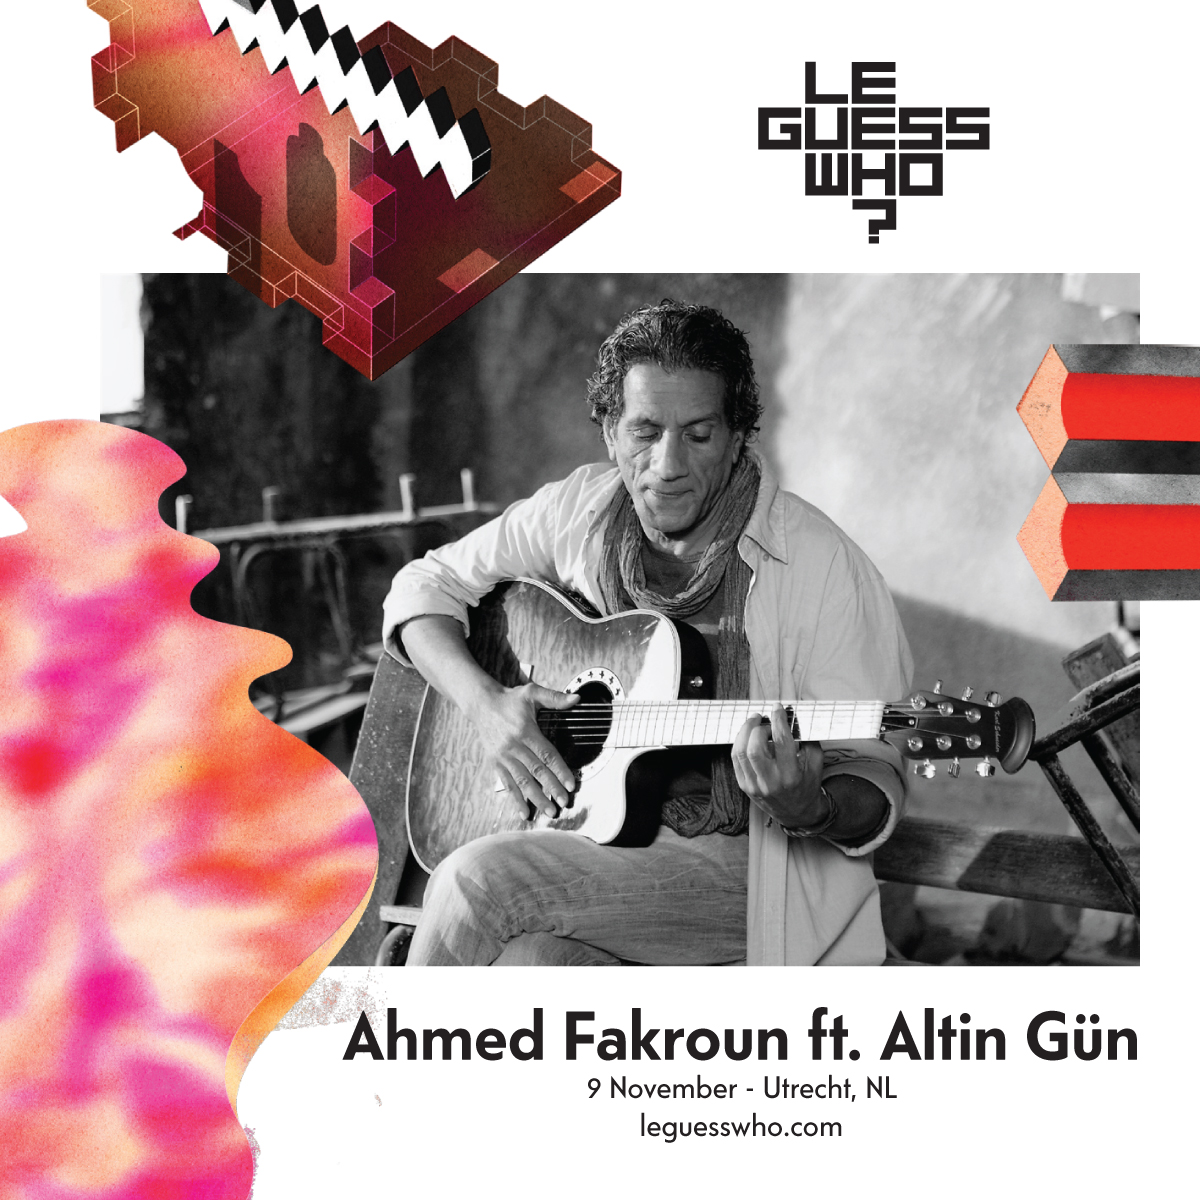 Ahmed Fakroun: rediscovered pioneer in modern Arabic music